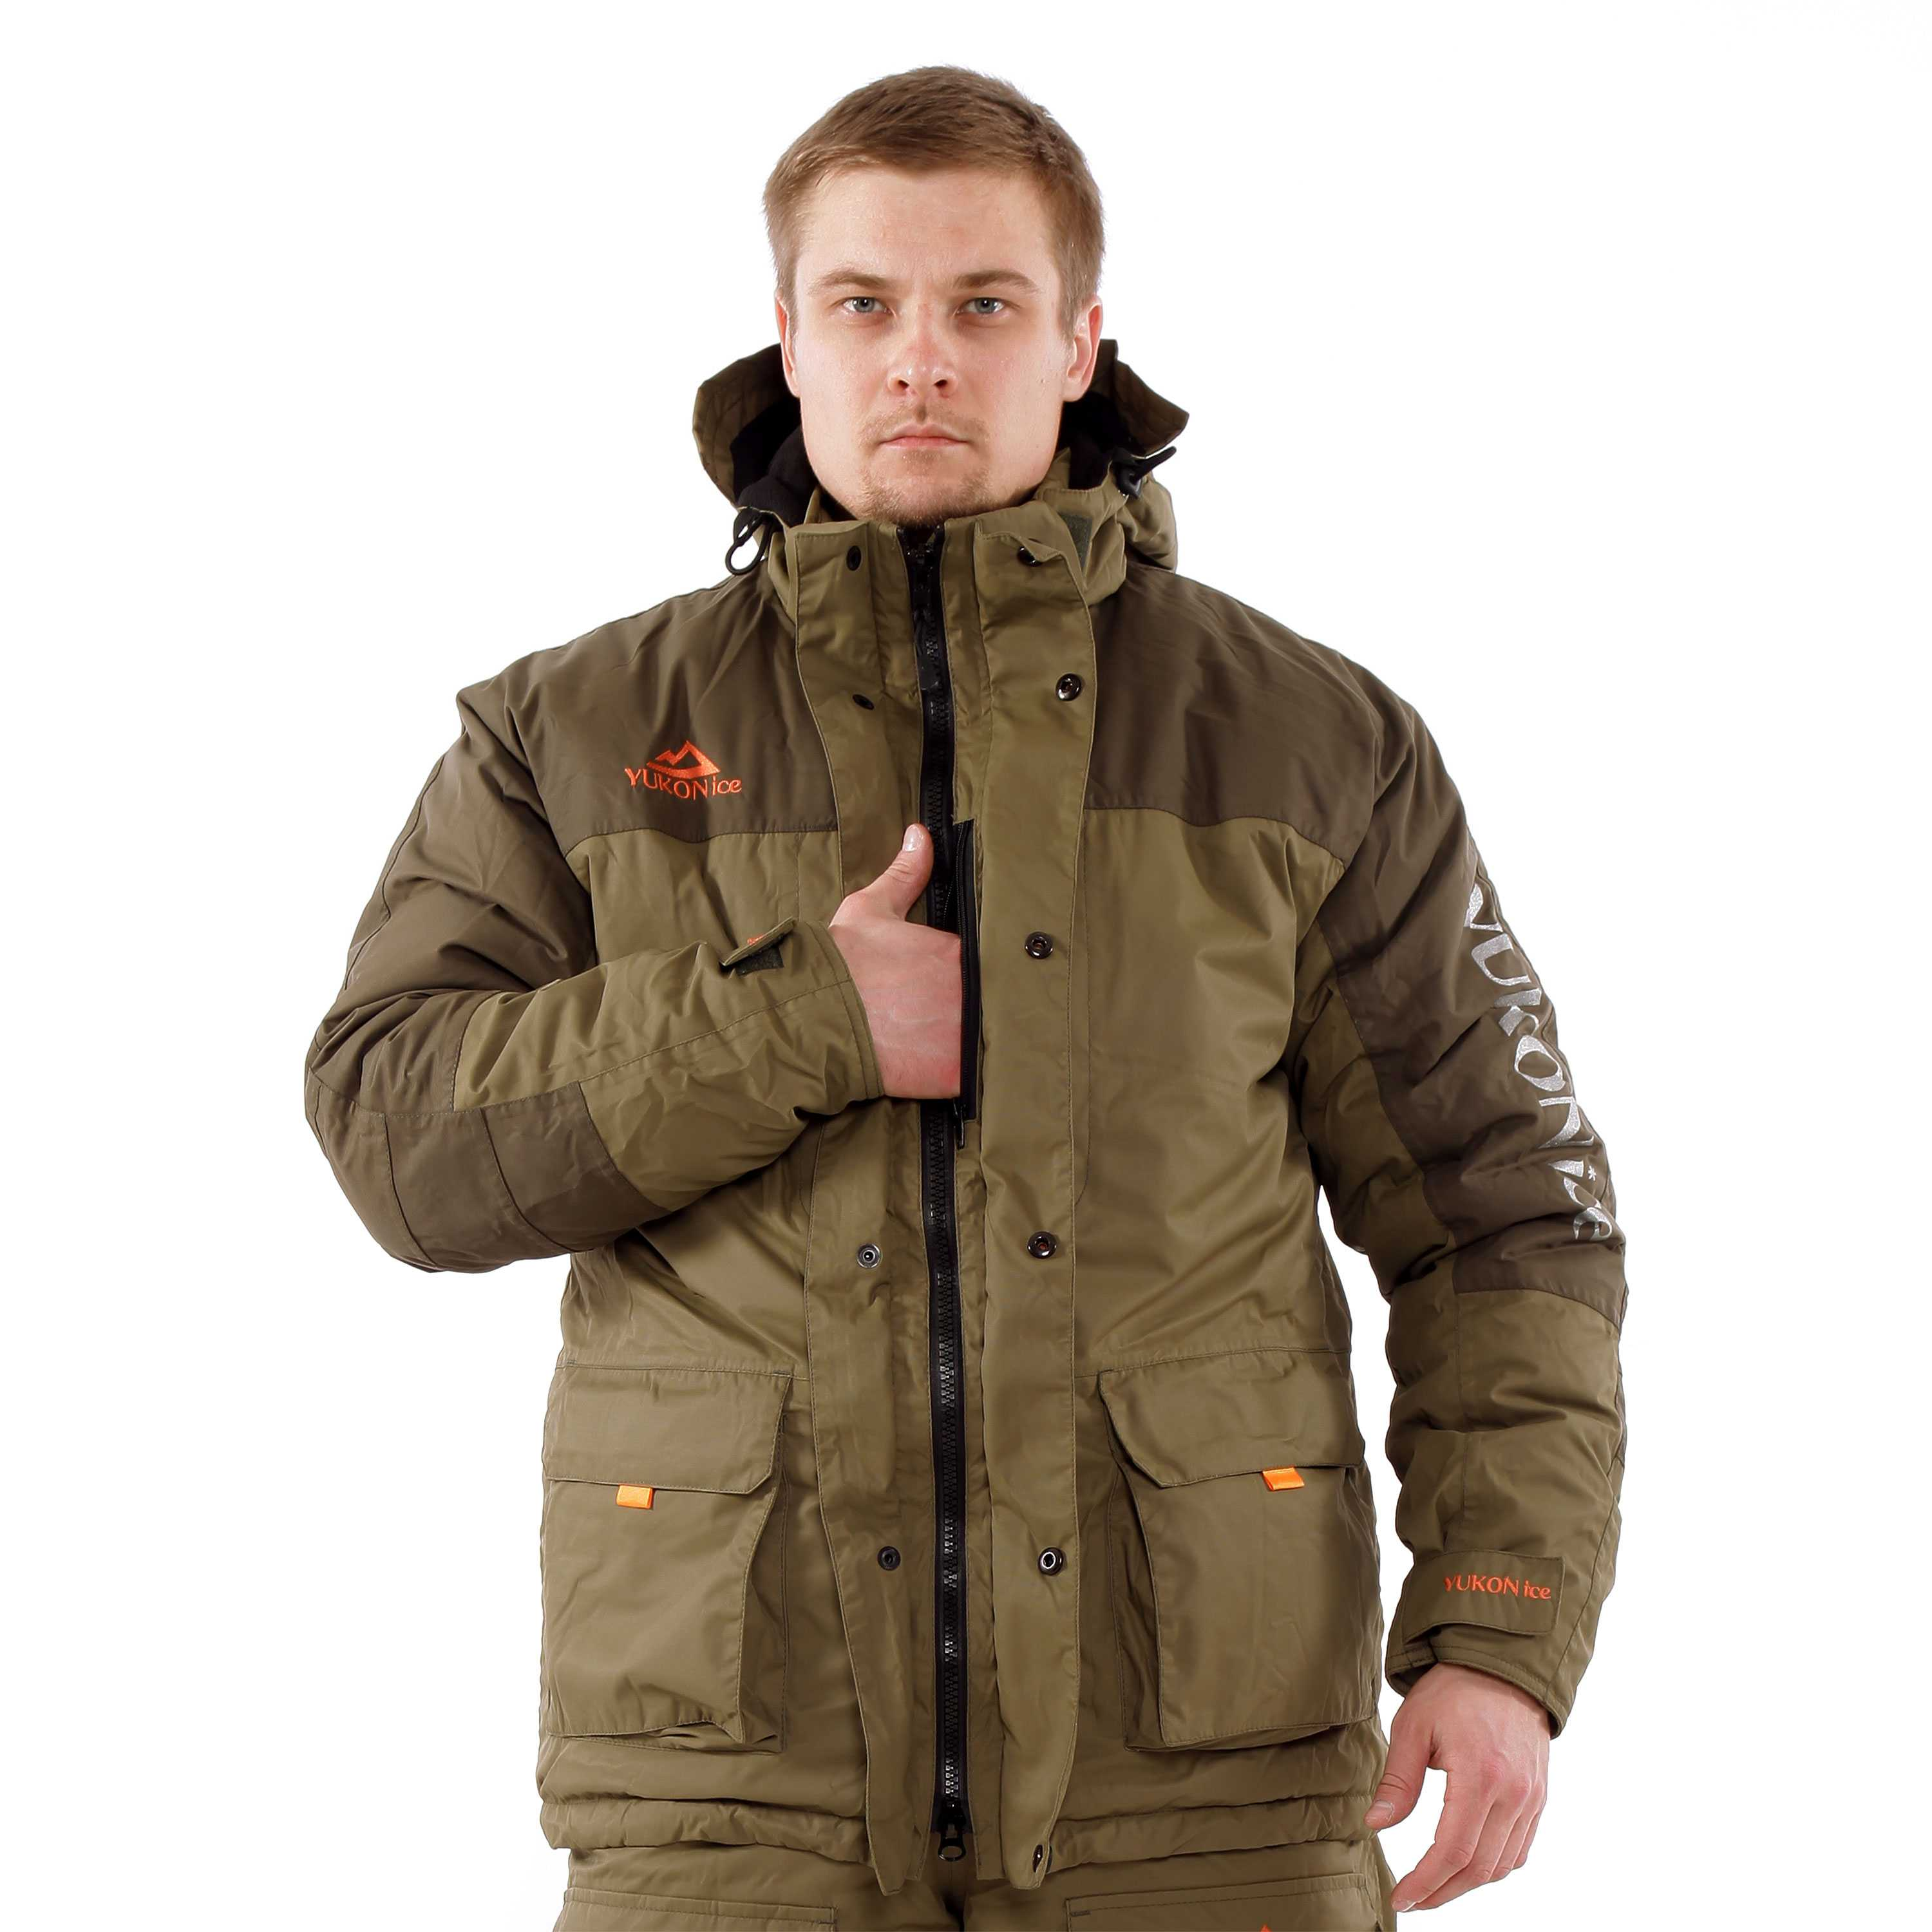 Костюм Huntsman Yukon Ice Breathable хаки/олива